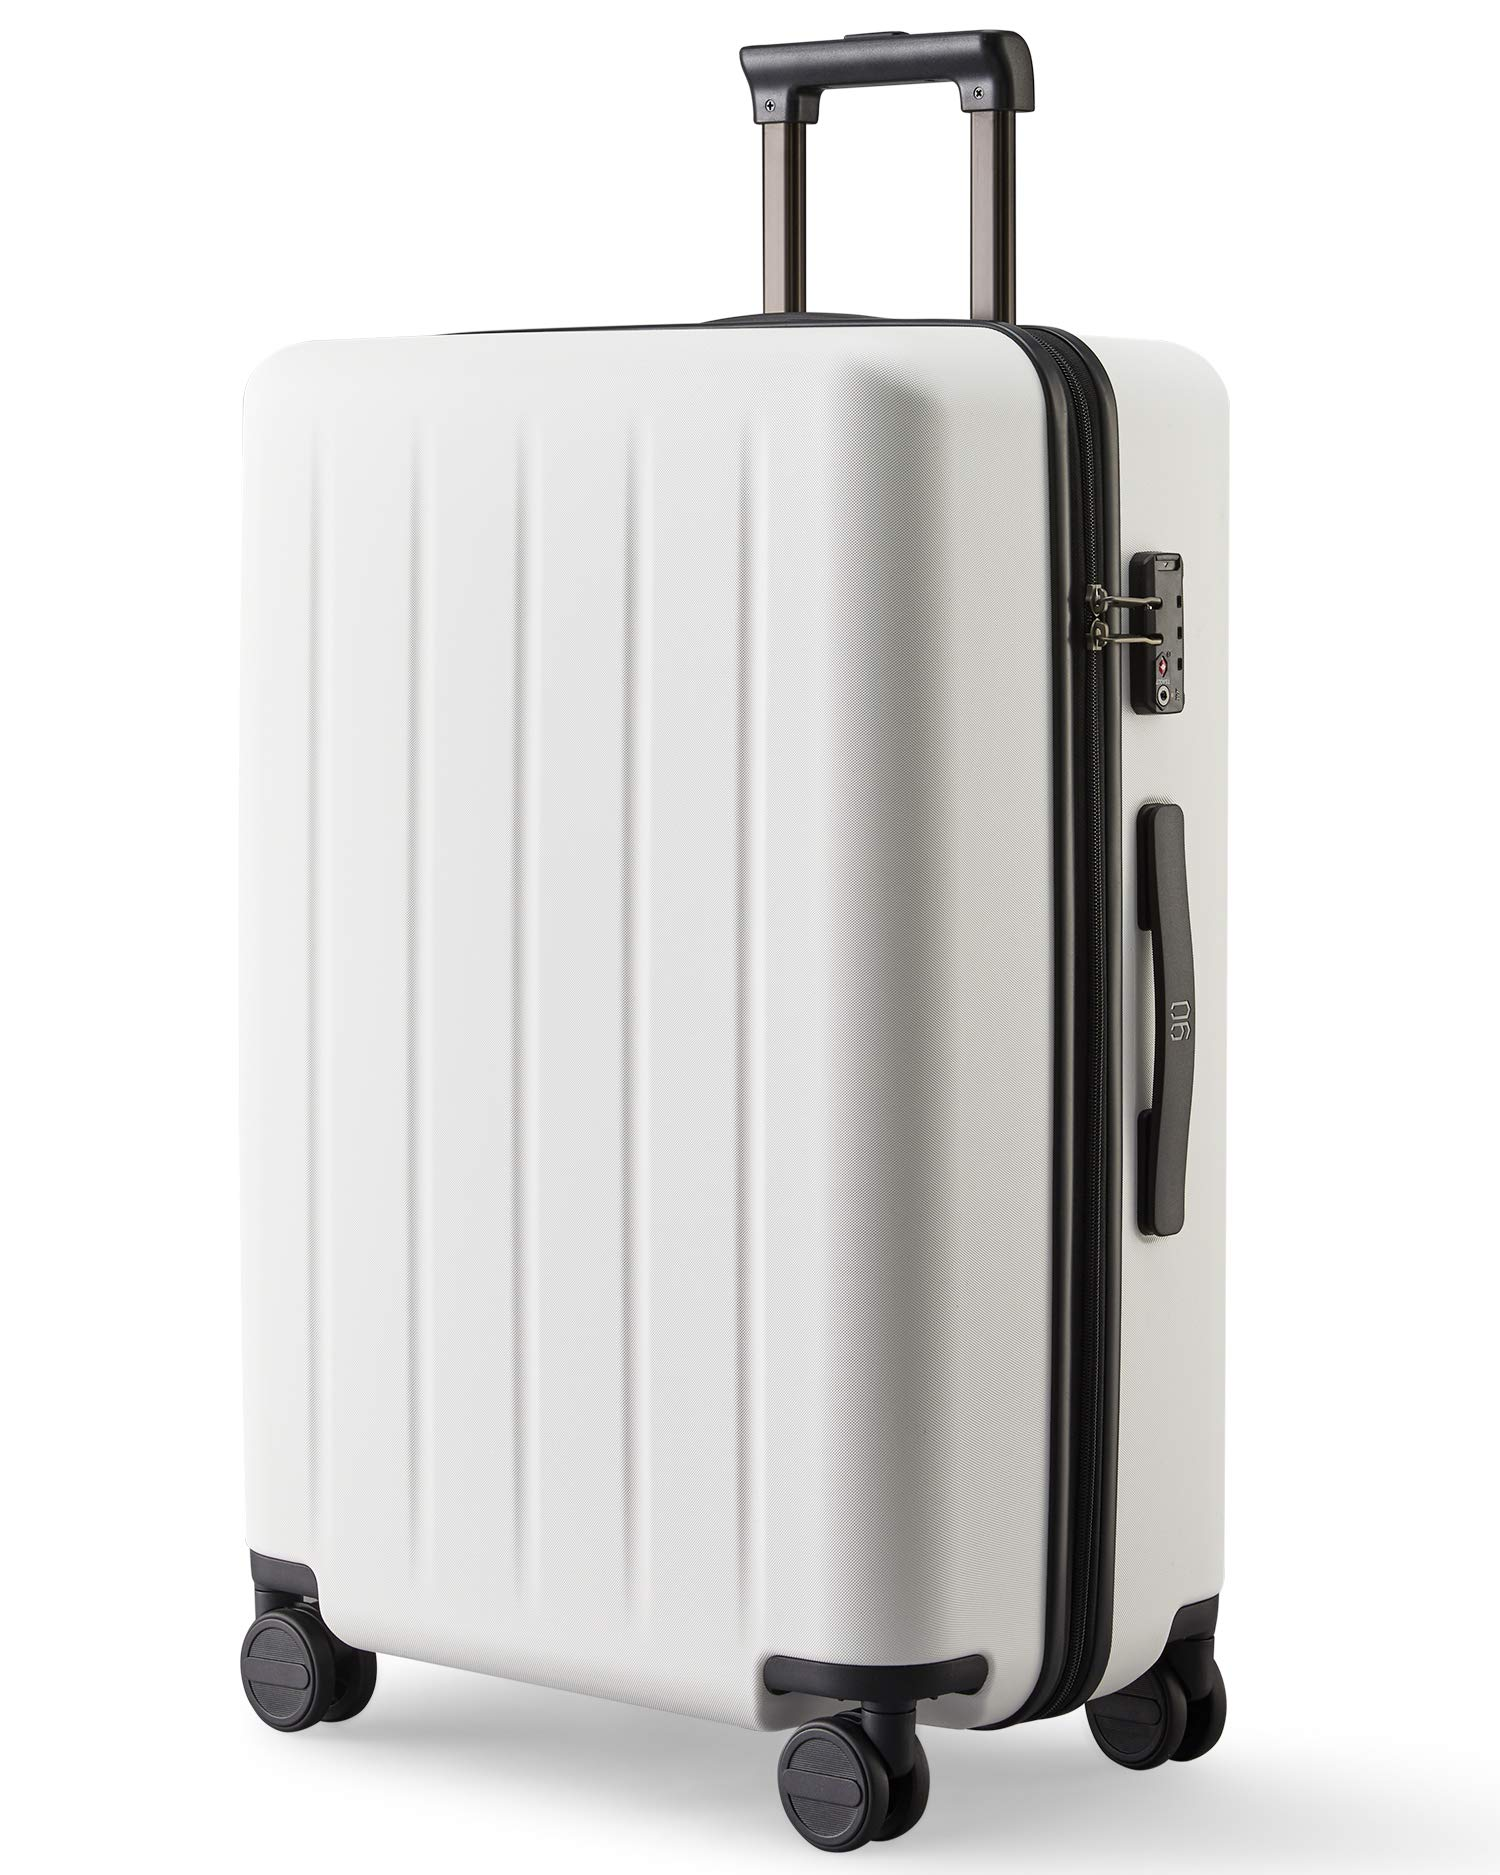 NINETYGO Carry on Luggage 22x14x9 with Spinner Wheels, 100% Polycarbonate Hardside, Lightweight TSA Compliant Hardshell Suitcase for Travel & Business Trip (20-Inch White)